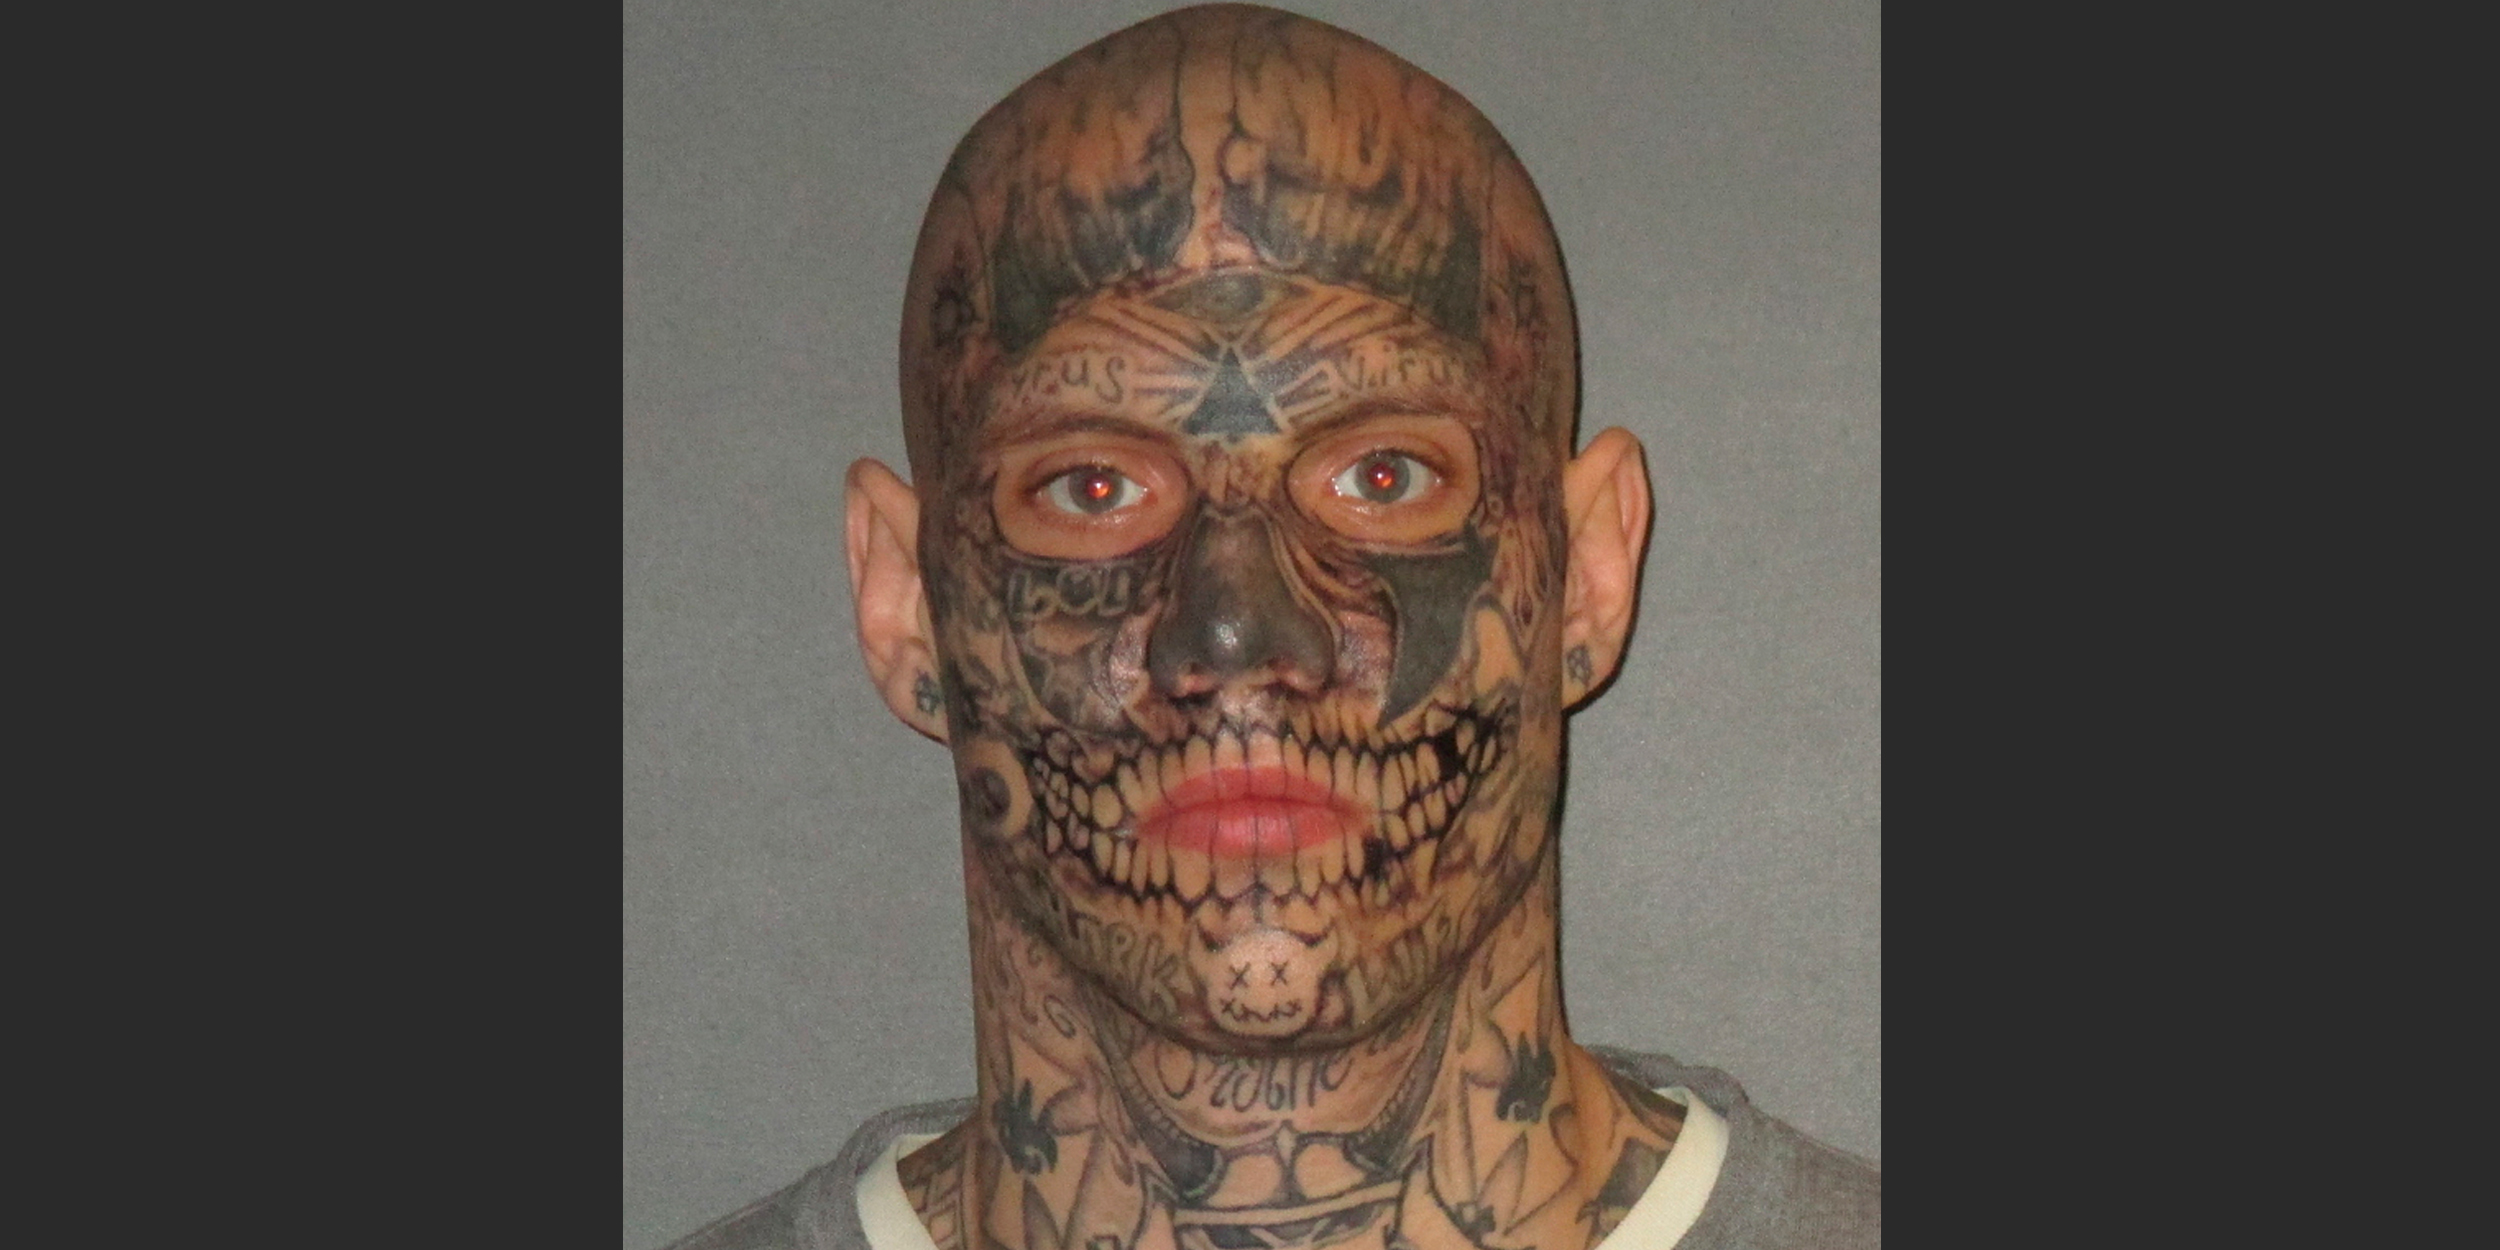 Man who feared his facial tattoos would affect chances for fair trial convicted of double murder